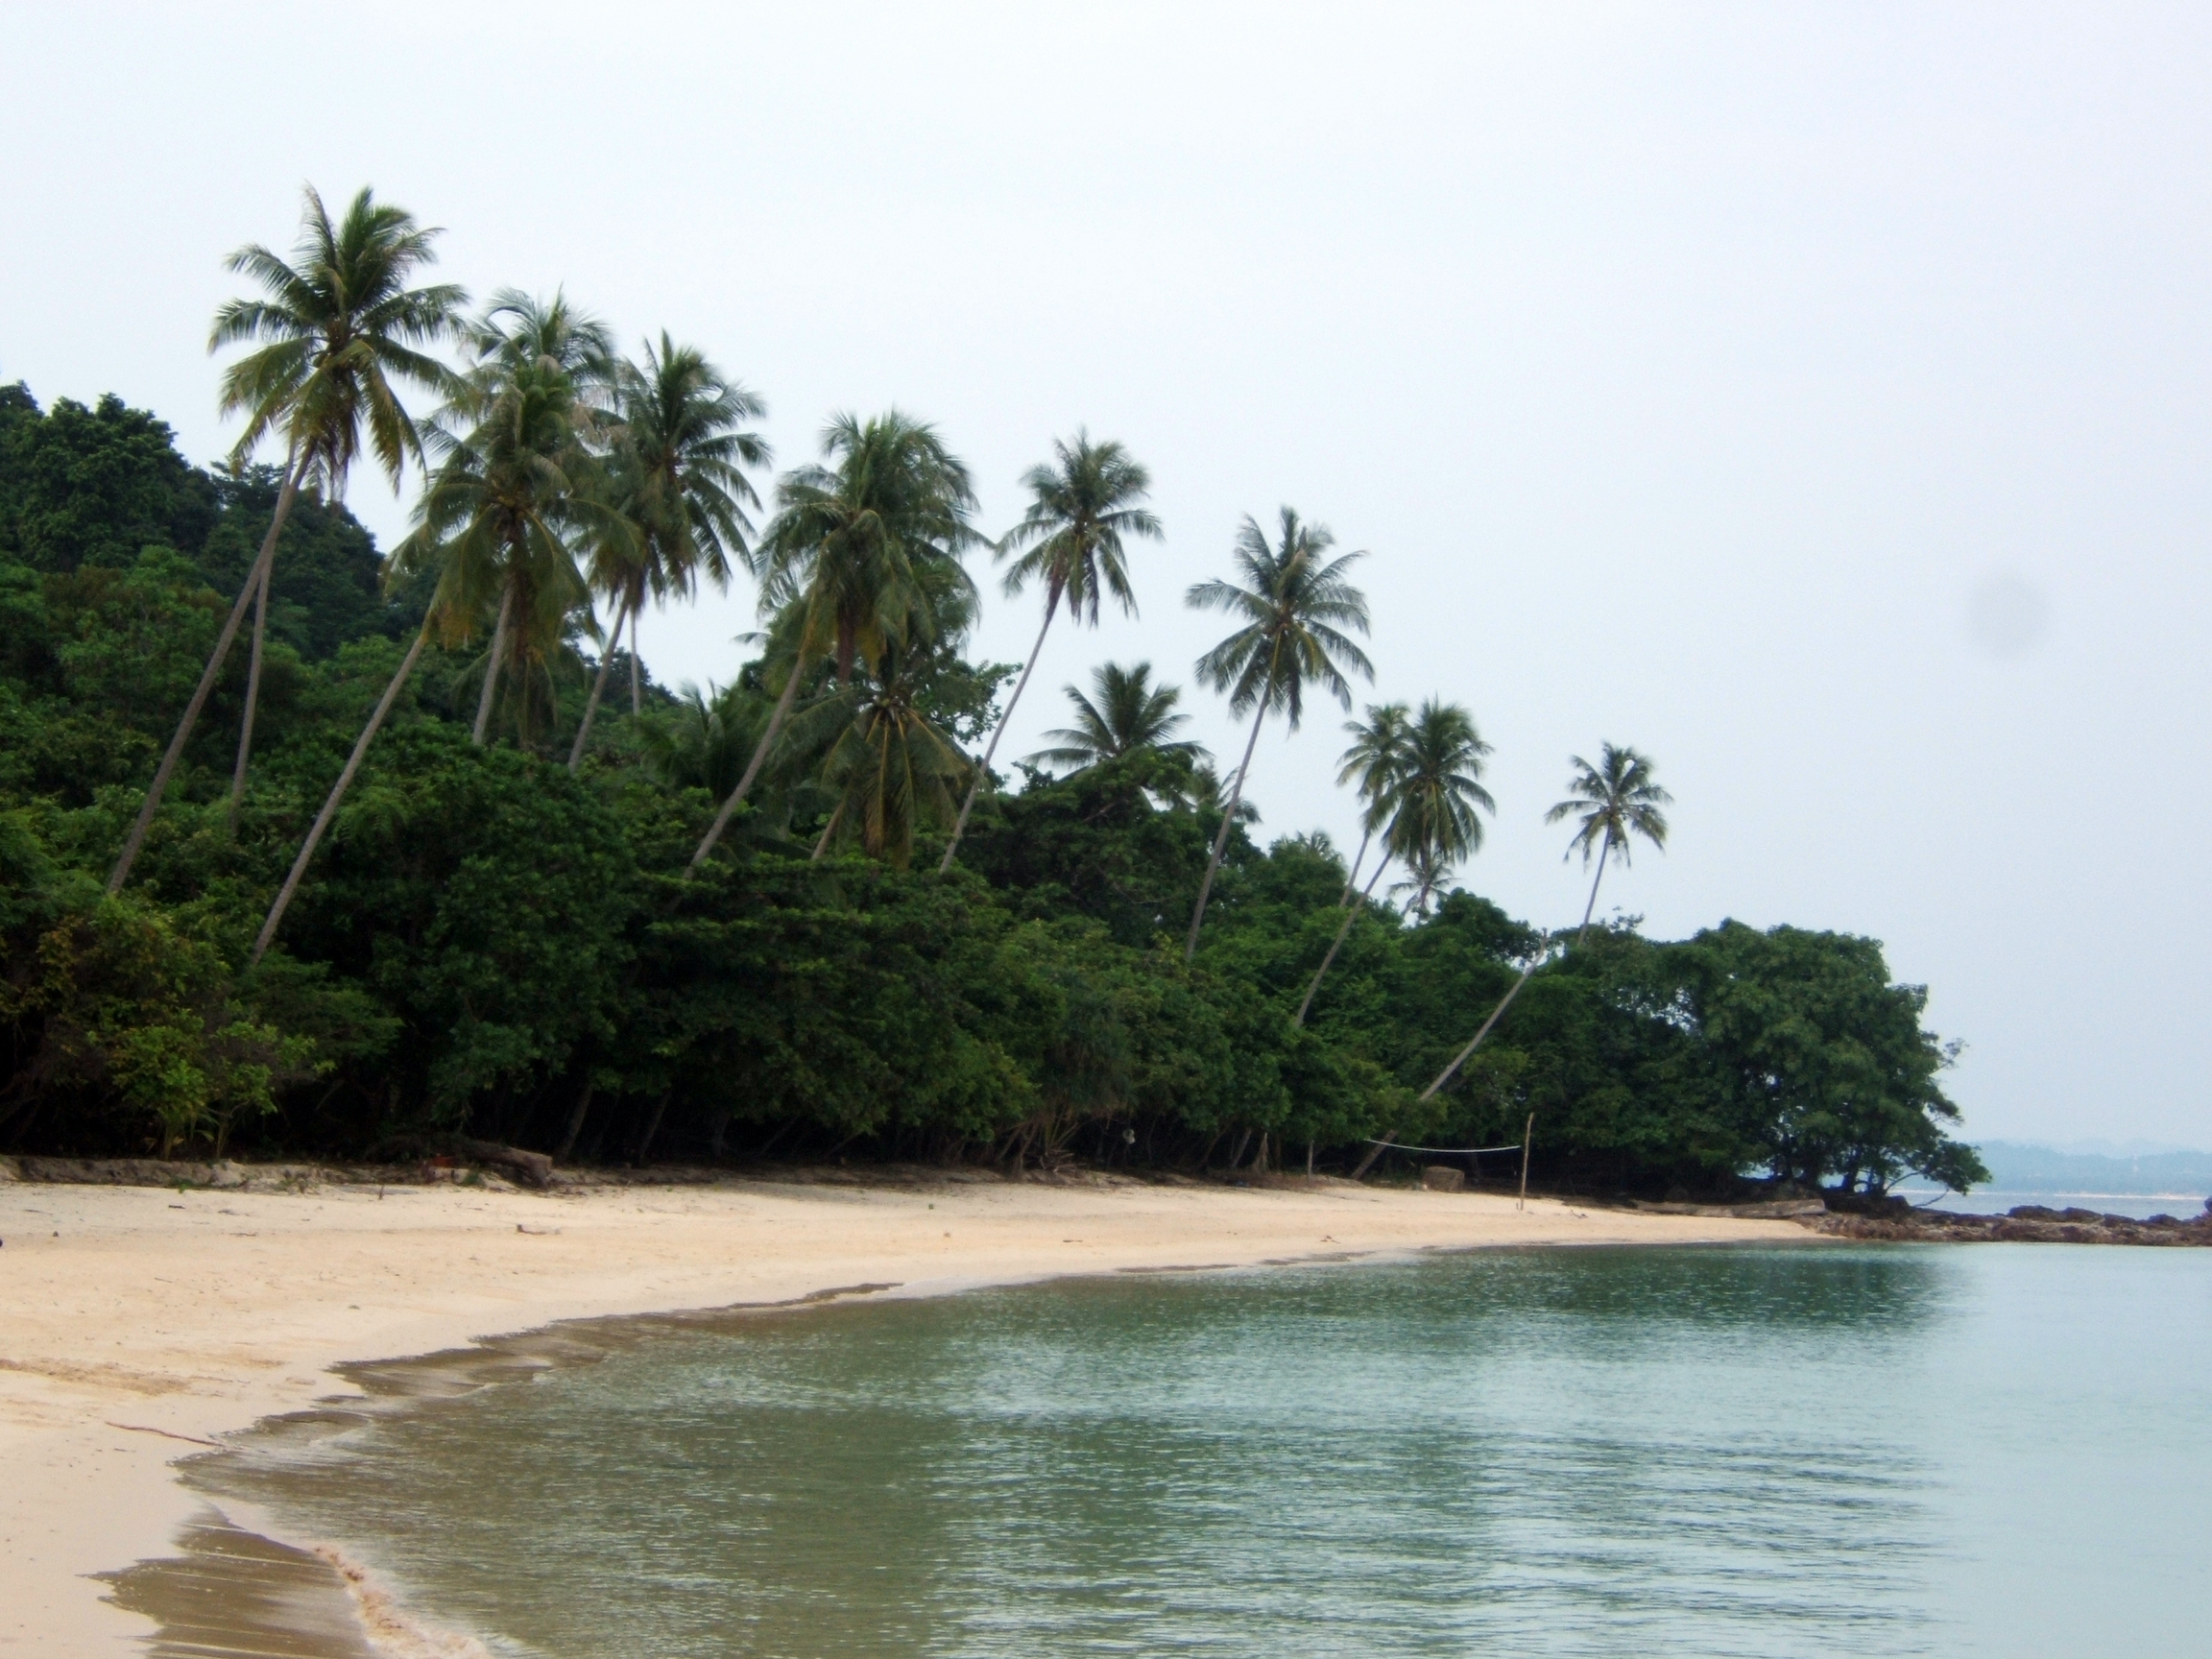 Pulau Kapas Malaysia  city pictures gallery : Pilt:Beach @ Pulau Kapas, Malaysia 234435536 Vikipeedia, vaba ...